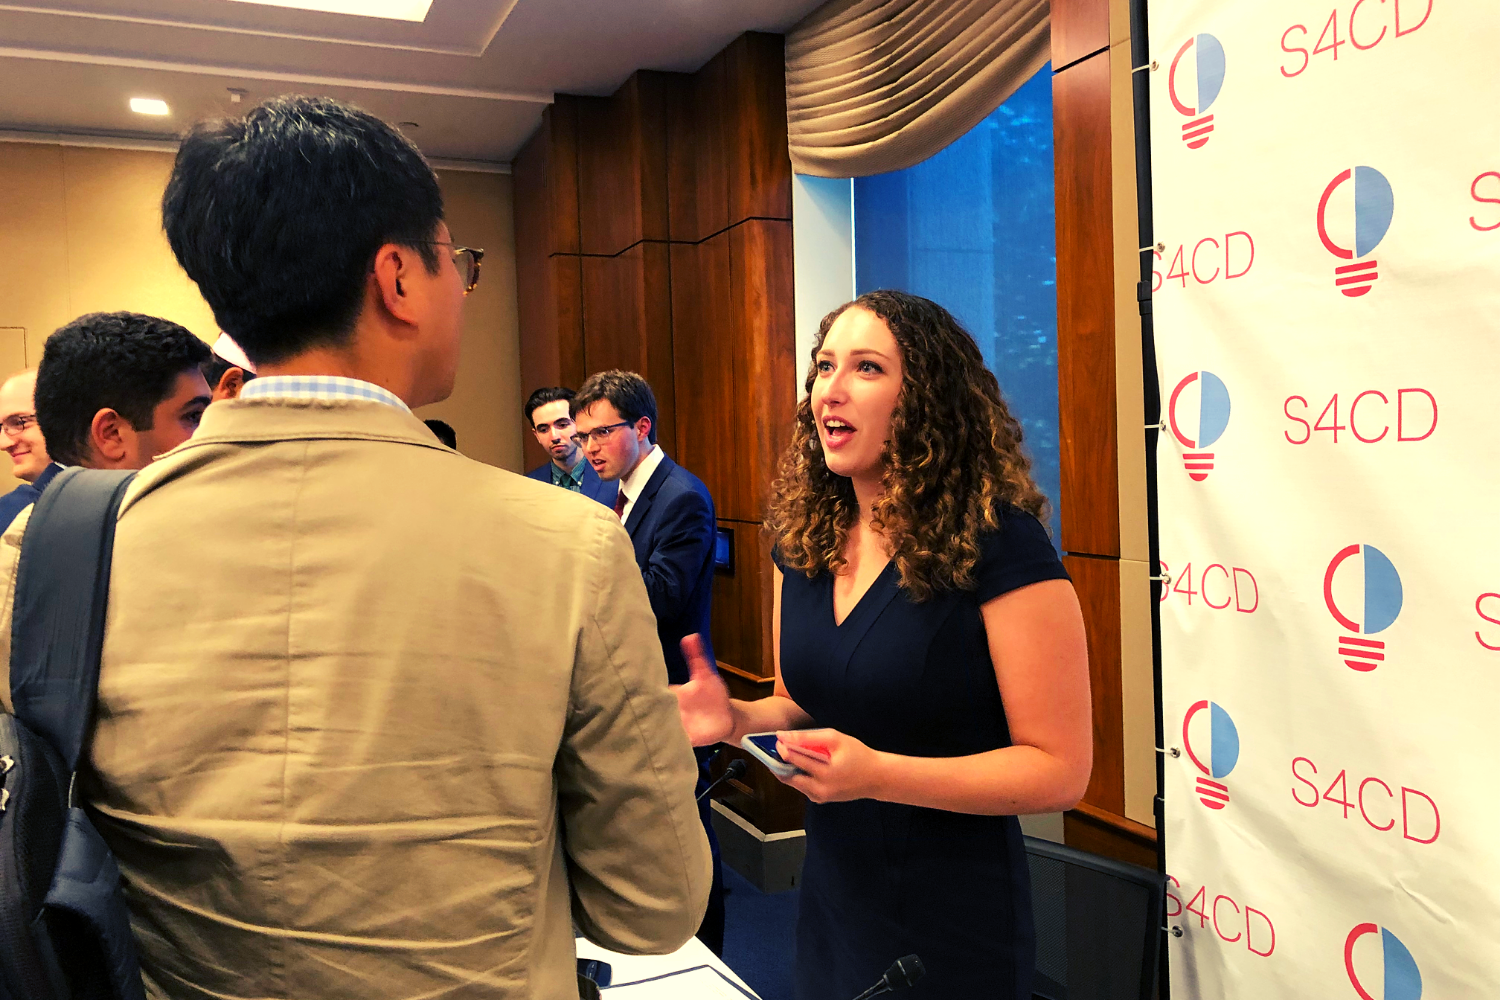 S4CD's VP Kiera O'Brien (and President Emerita of the Harvard Republican) interacting with attendees.